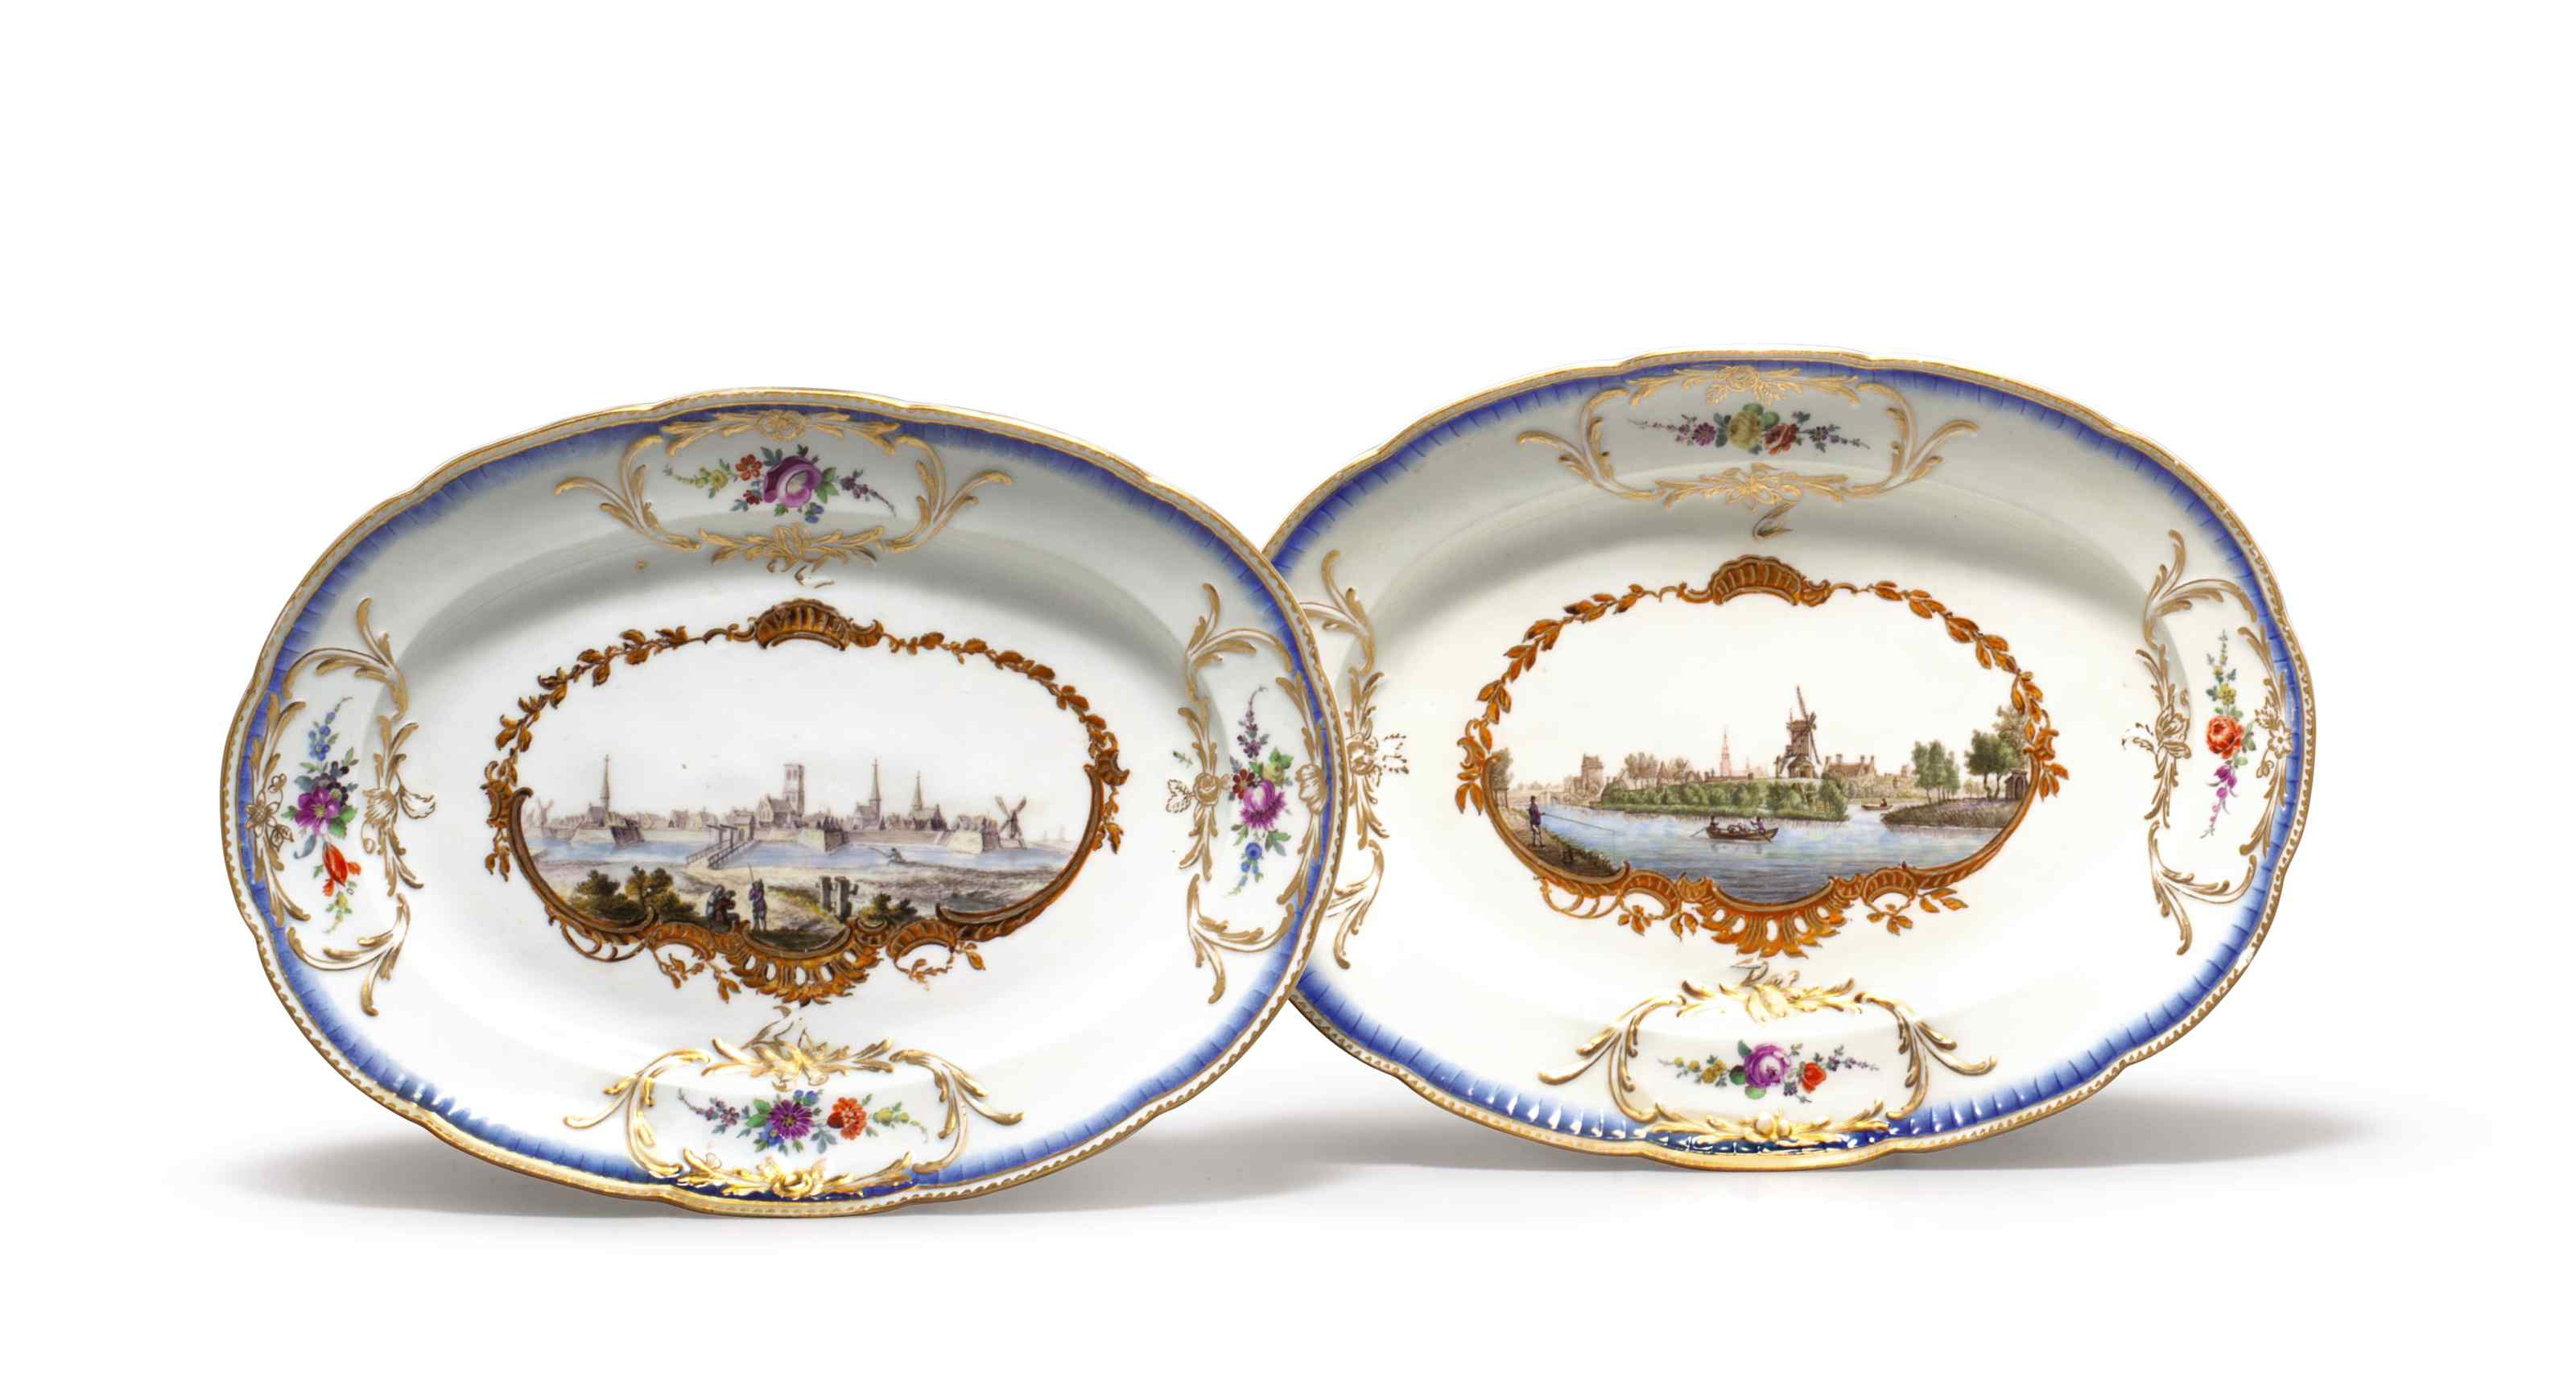 A PAIR OF MEISSEN PORCELAIN TO